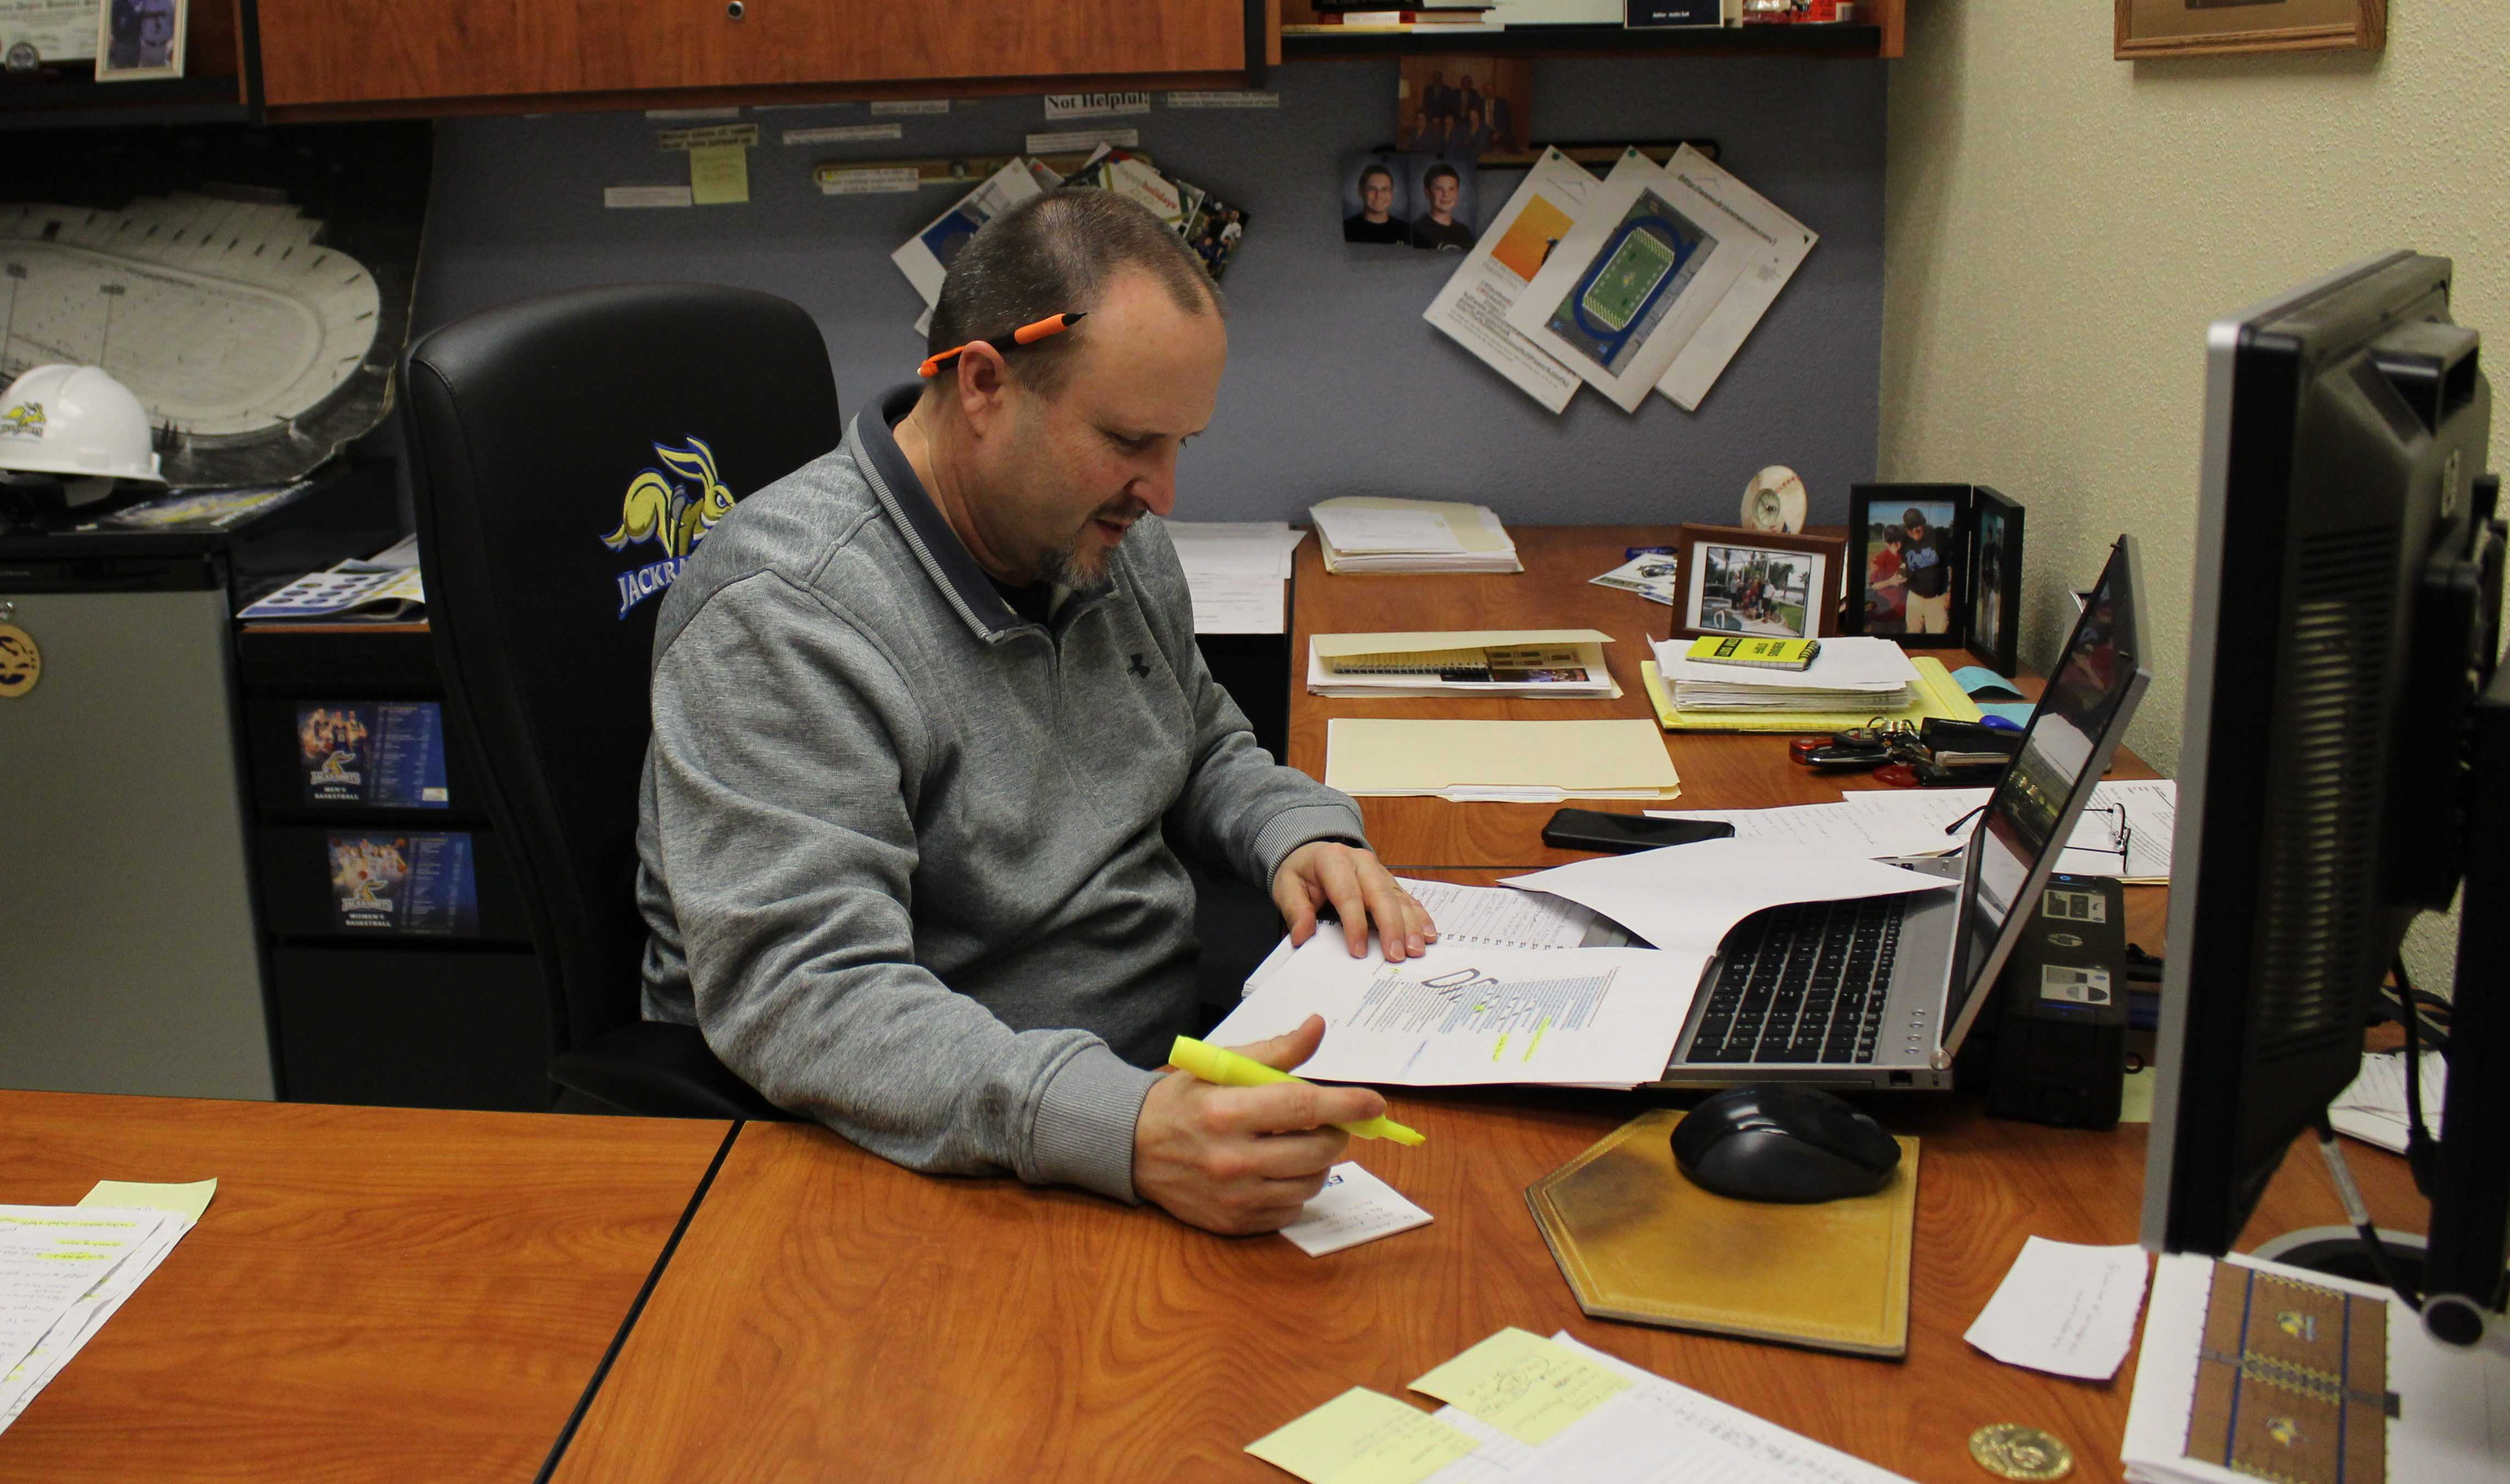 JENNY NGUYEN Jeff Holm is the Director of Athletic Facilities at South Dakota State University. Since he often works with repairs, his job is unpredictable. Lately, he has focused his daily work on the Wellness Center expansion.